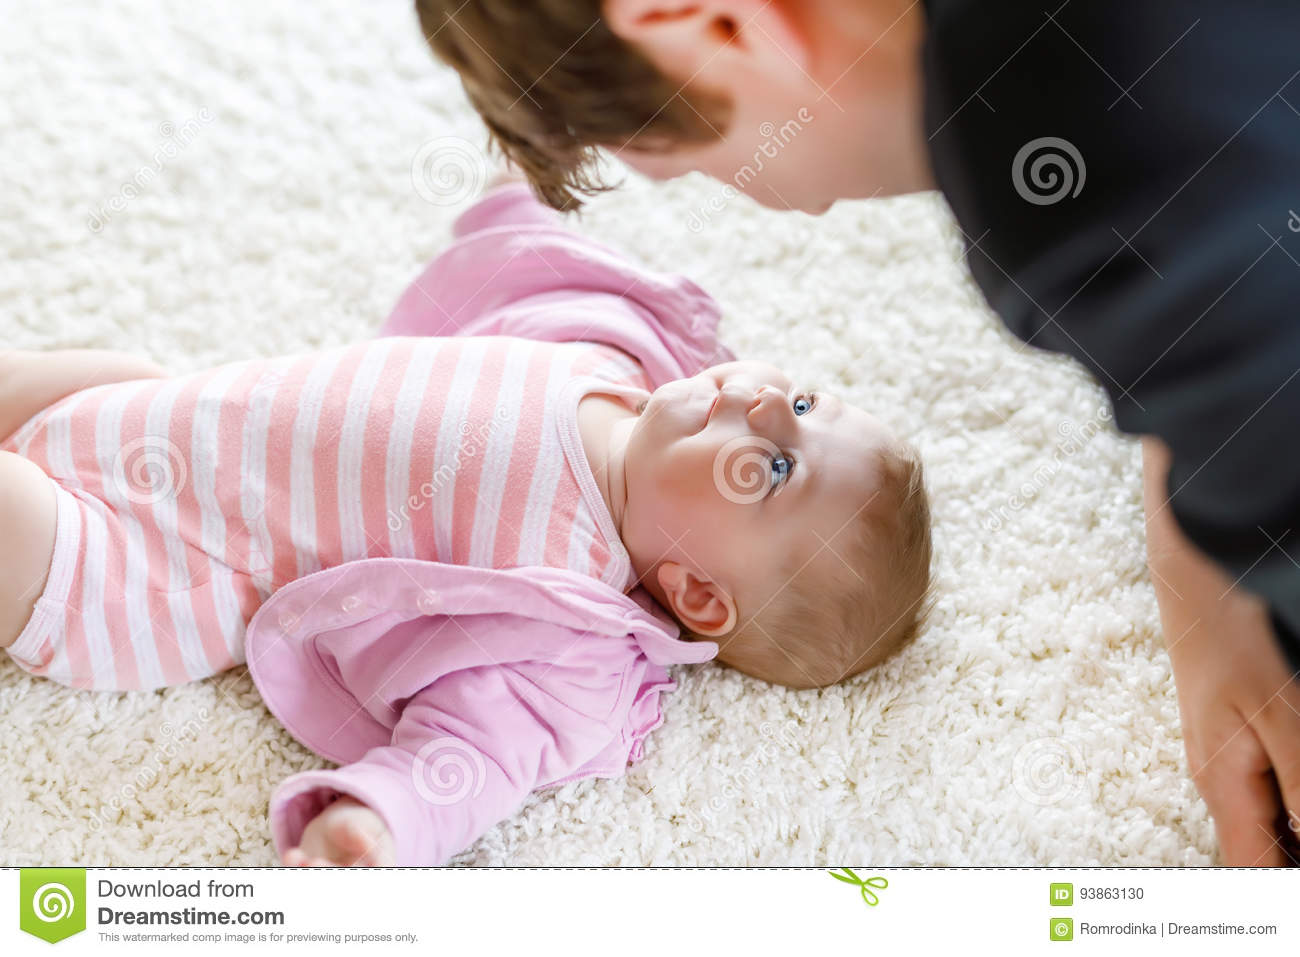 Happy proud young father having fun with newborn baby daughter family portrait together dad with baby girl love new born child looking on dad